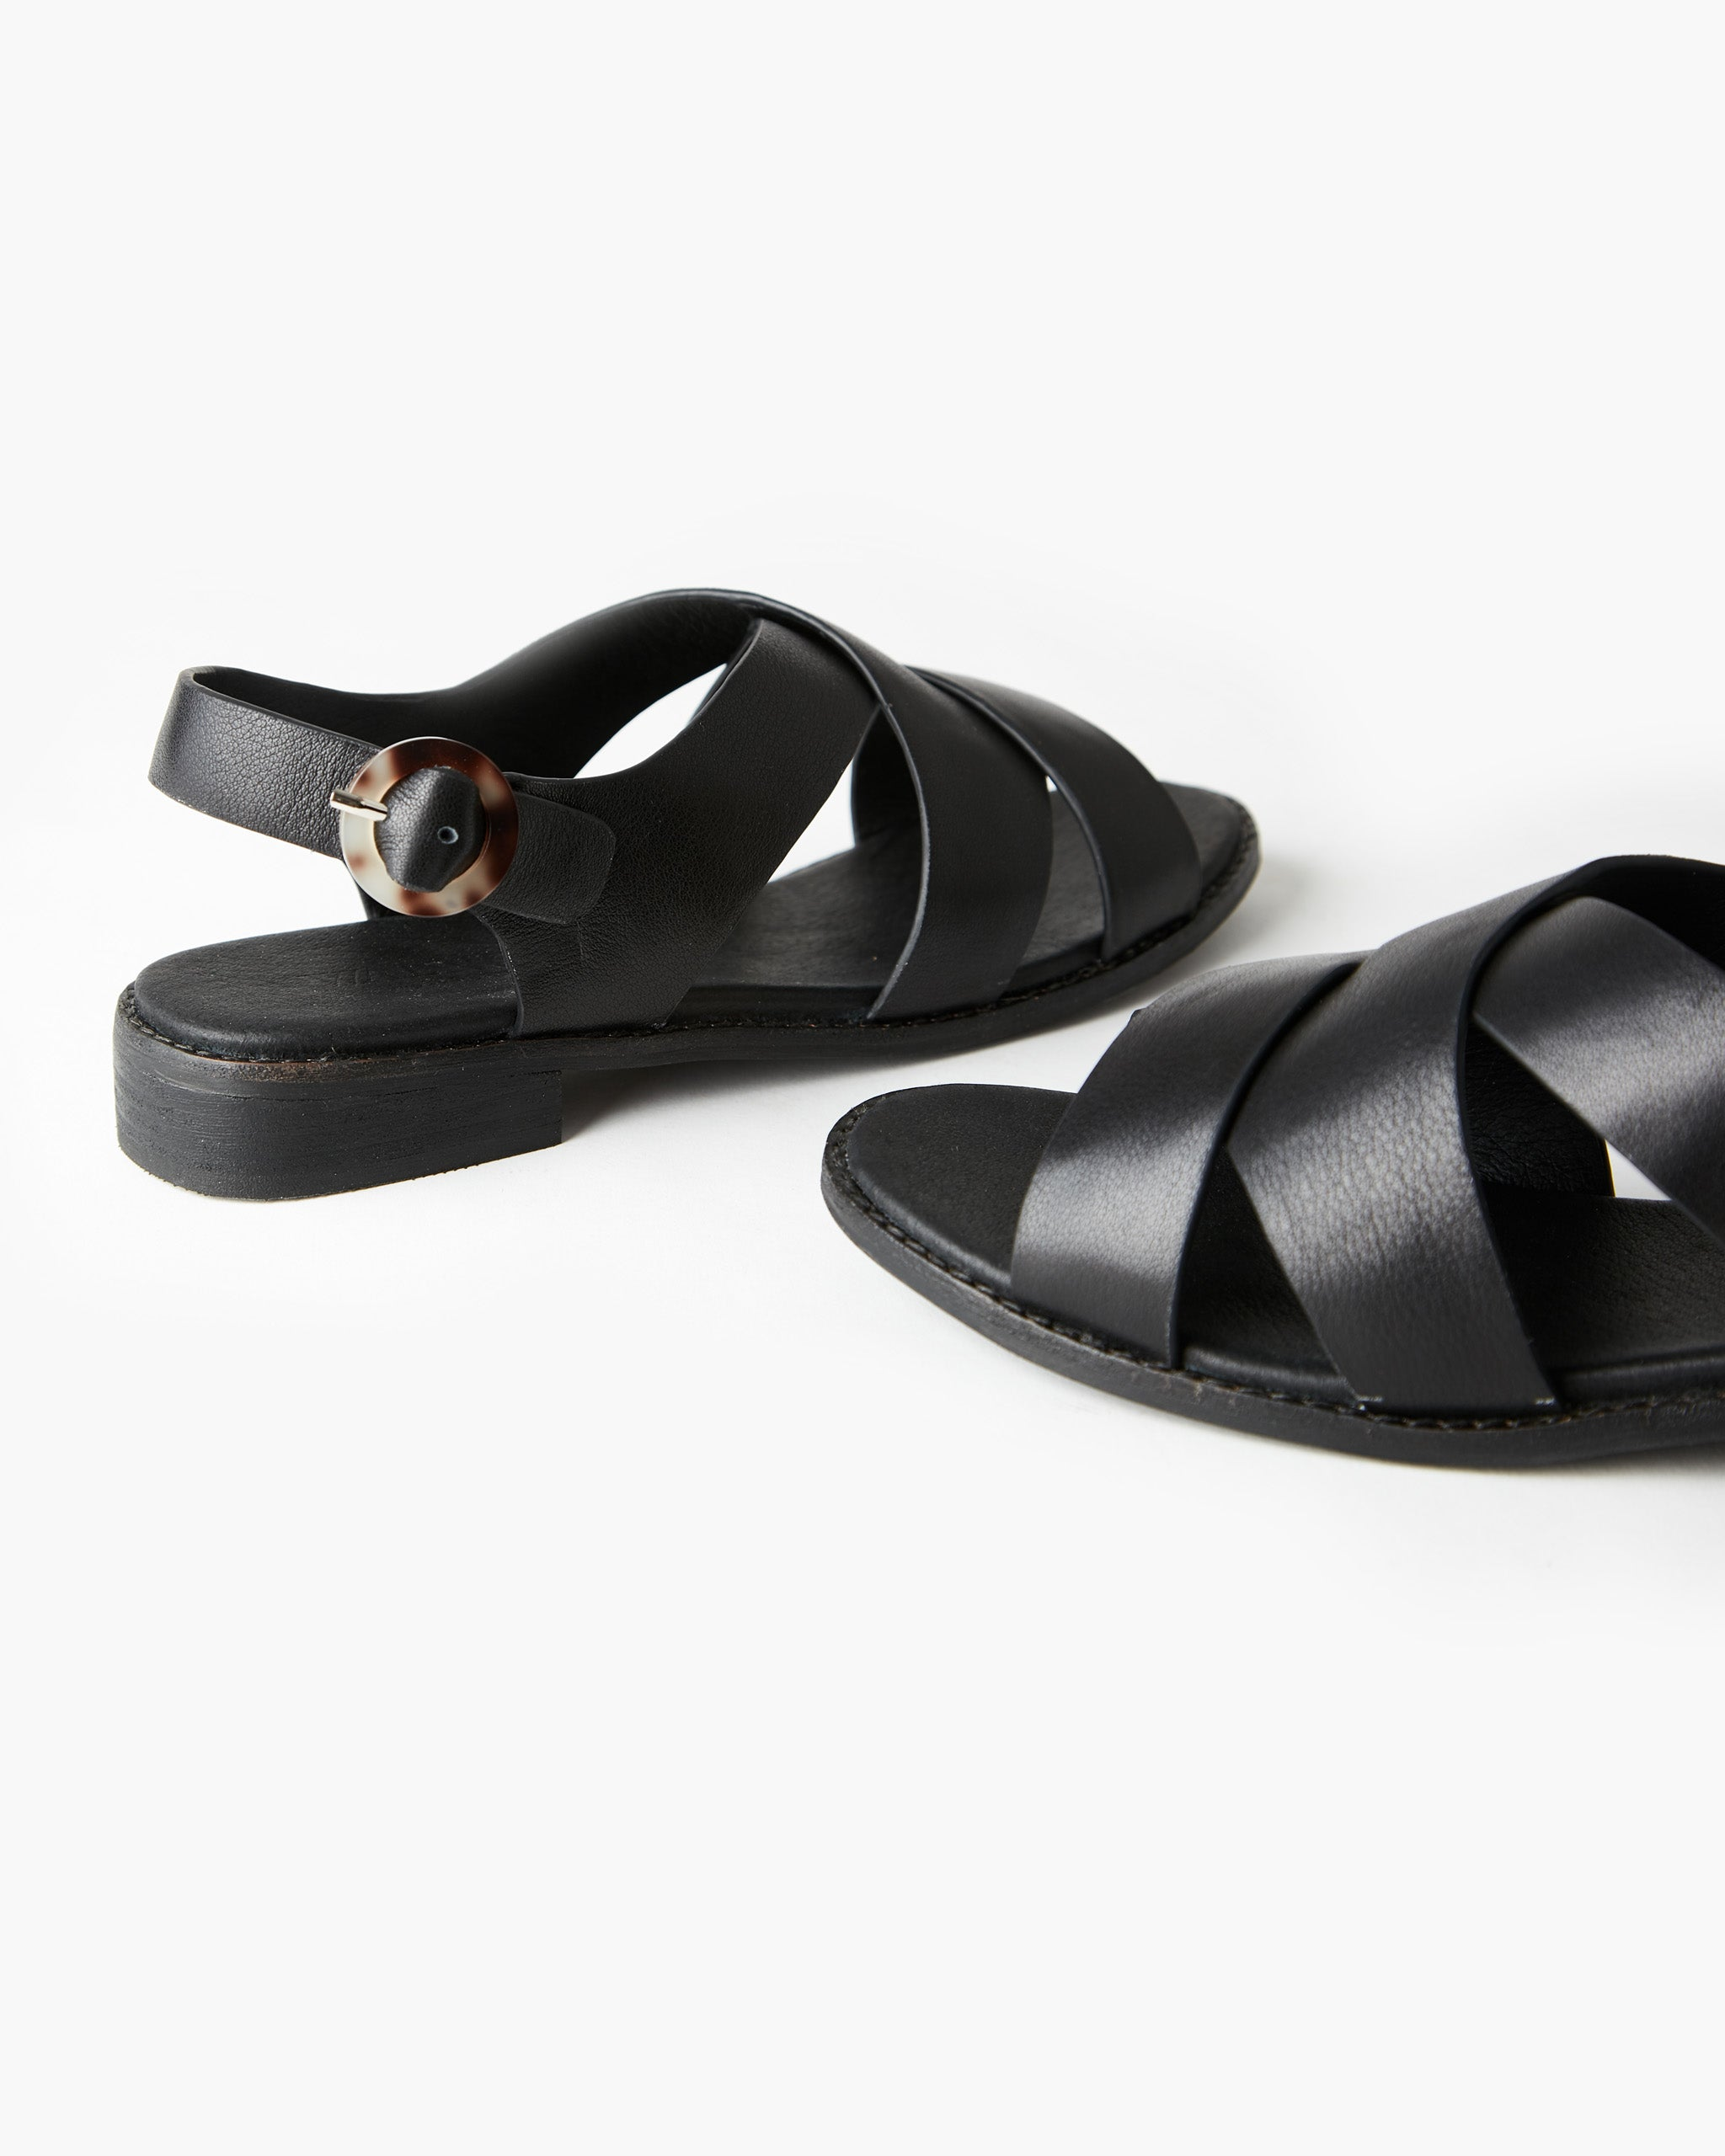 Esmay Leather Sandal - Black